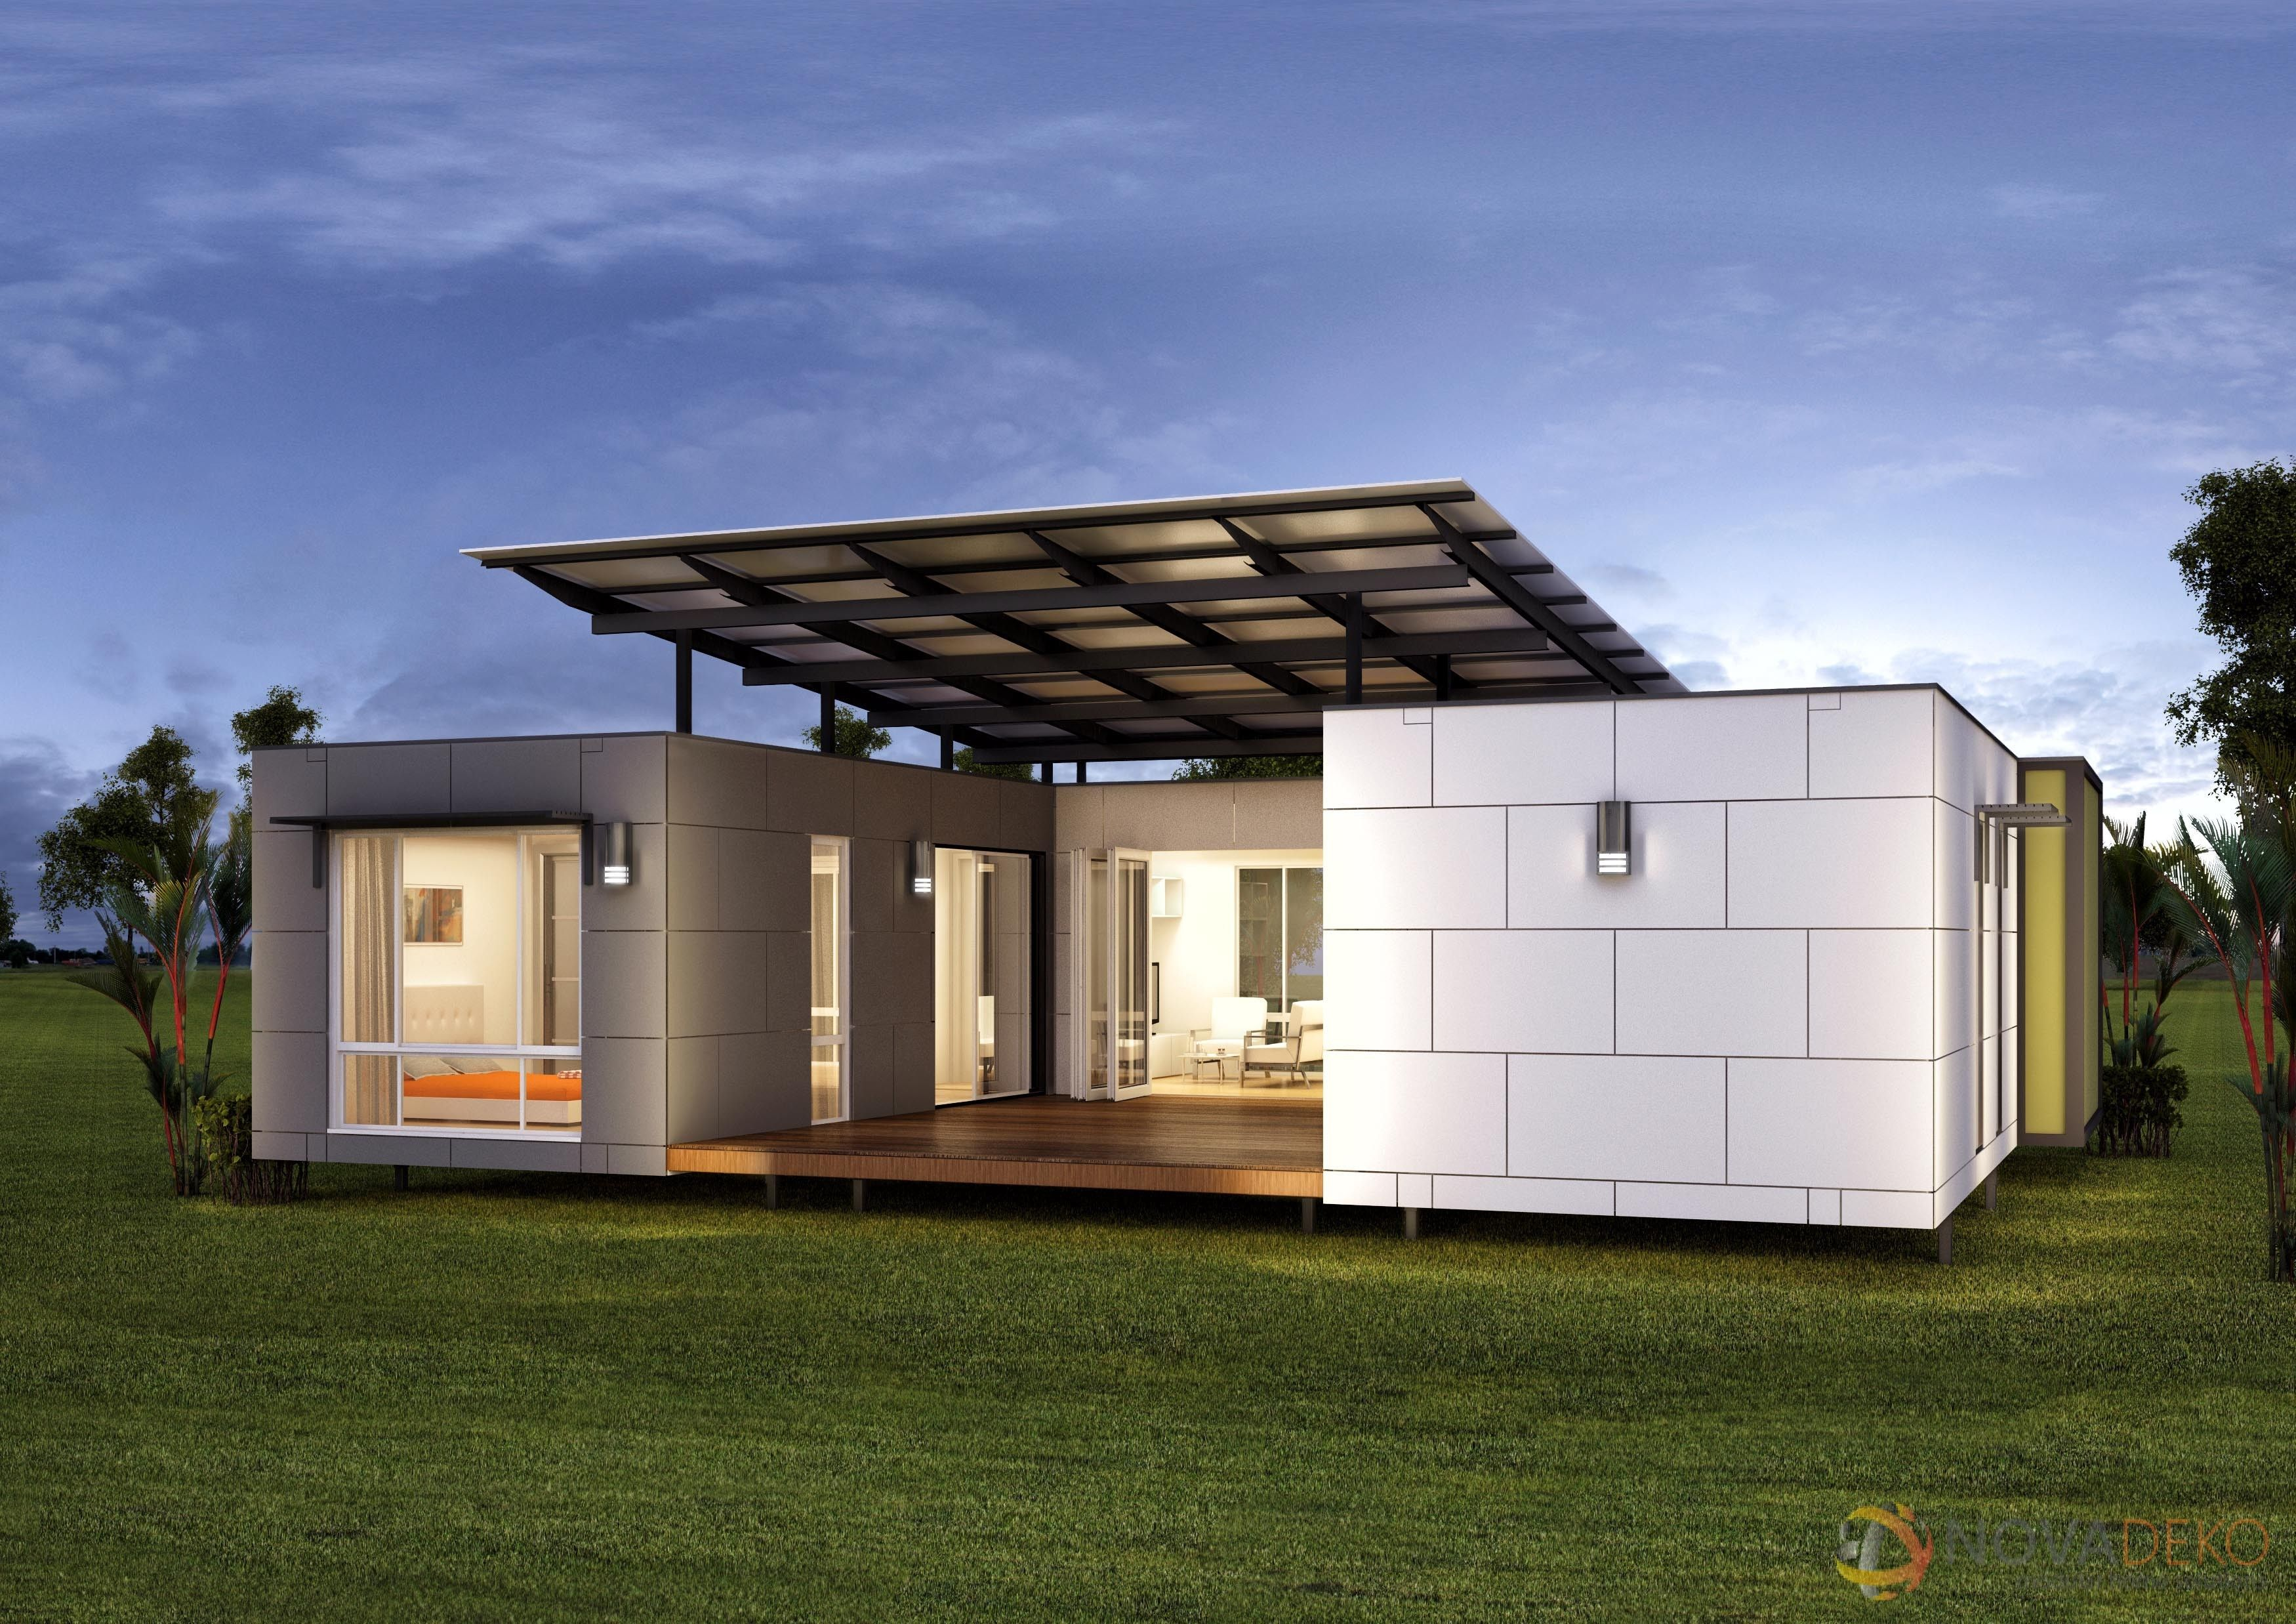 Average Price Of Modular Homes the madrid: $128,900. a simple but very practical 3 bedroom